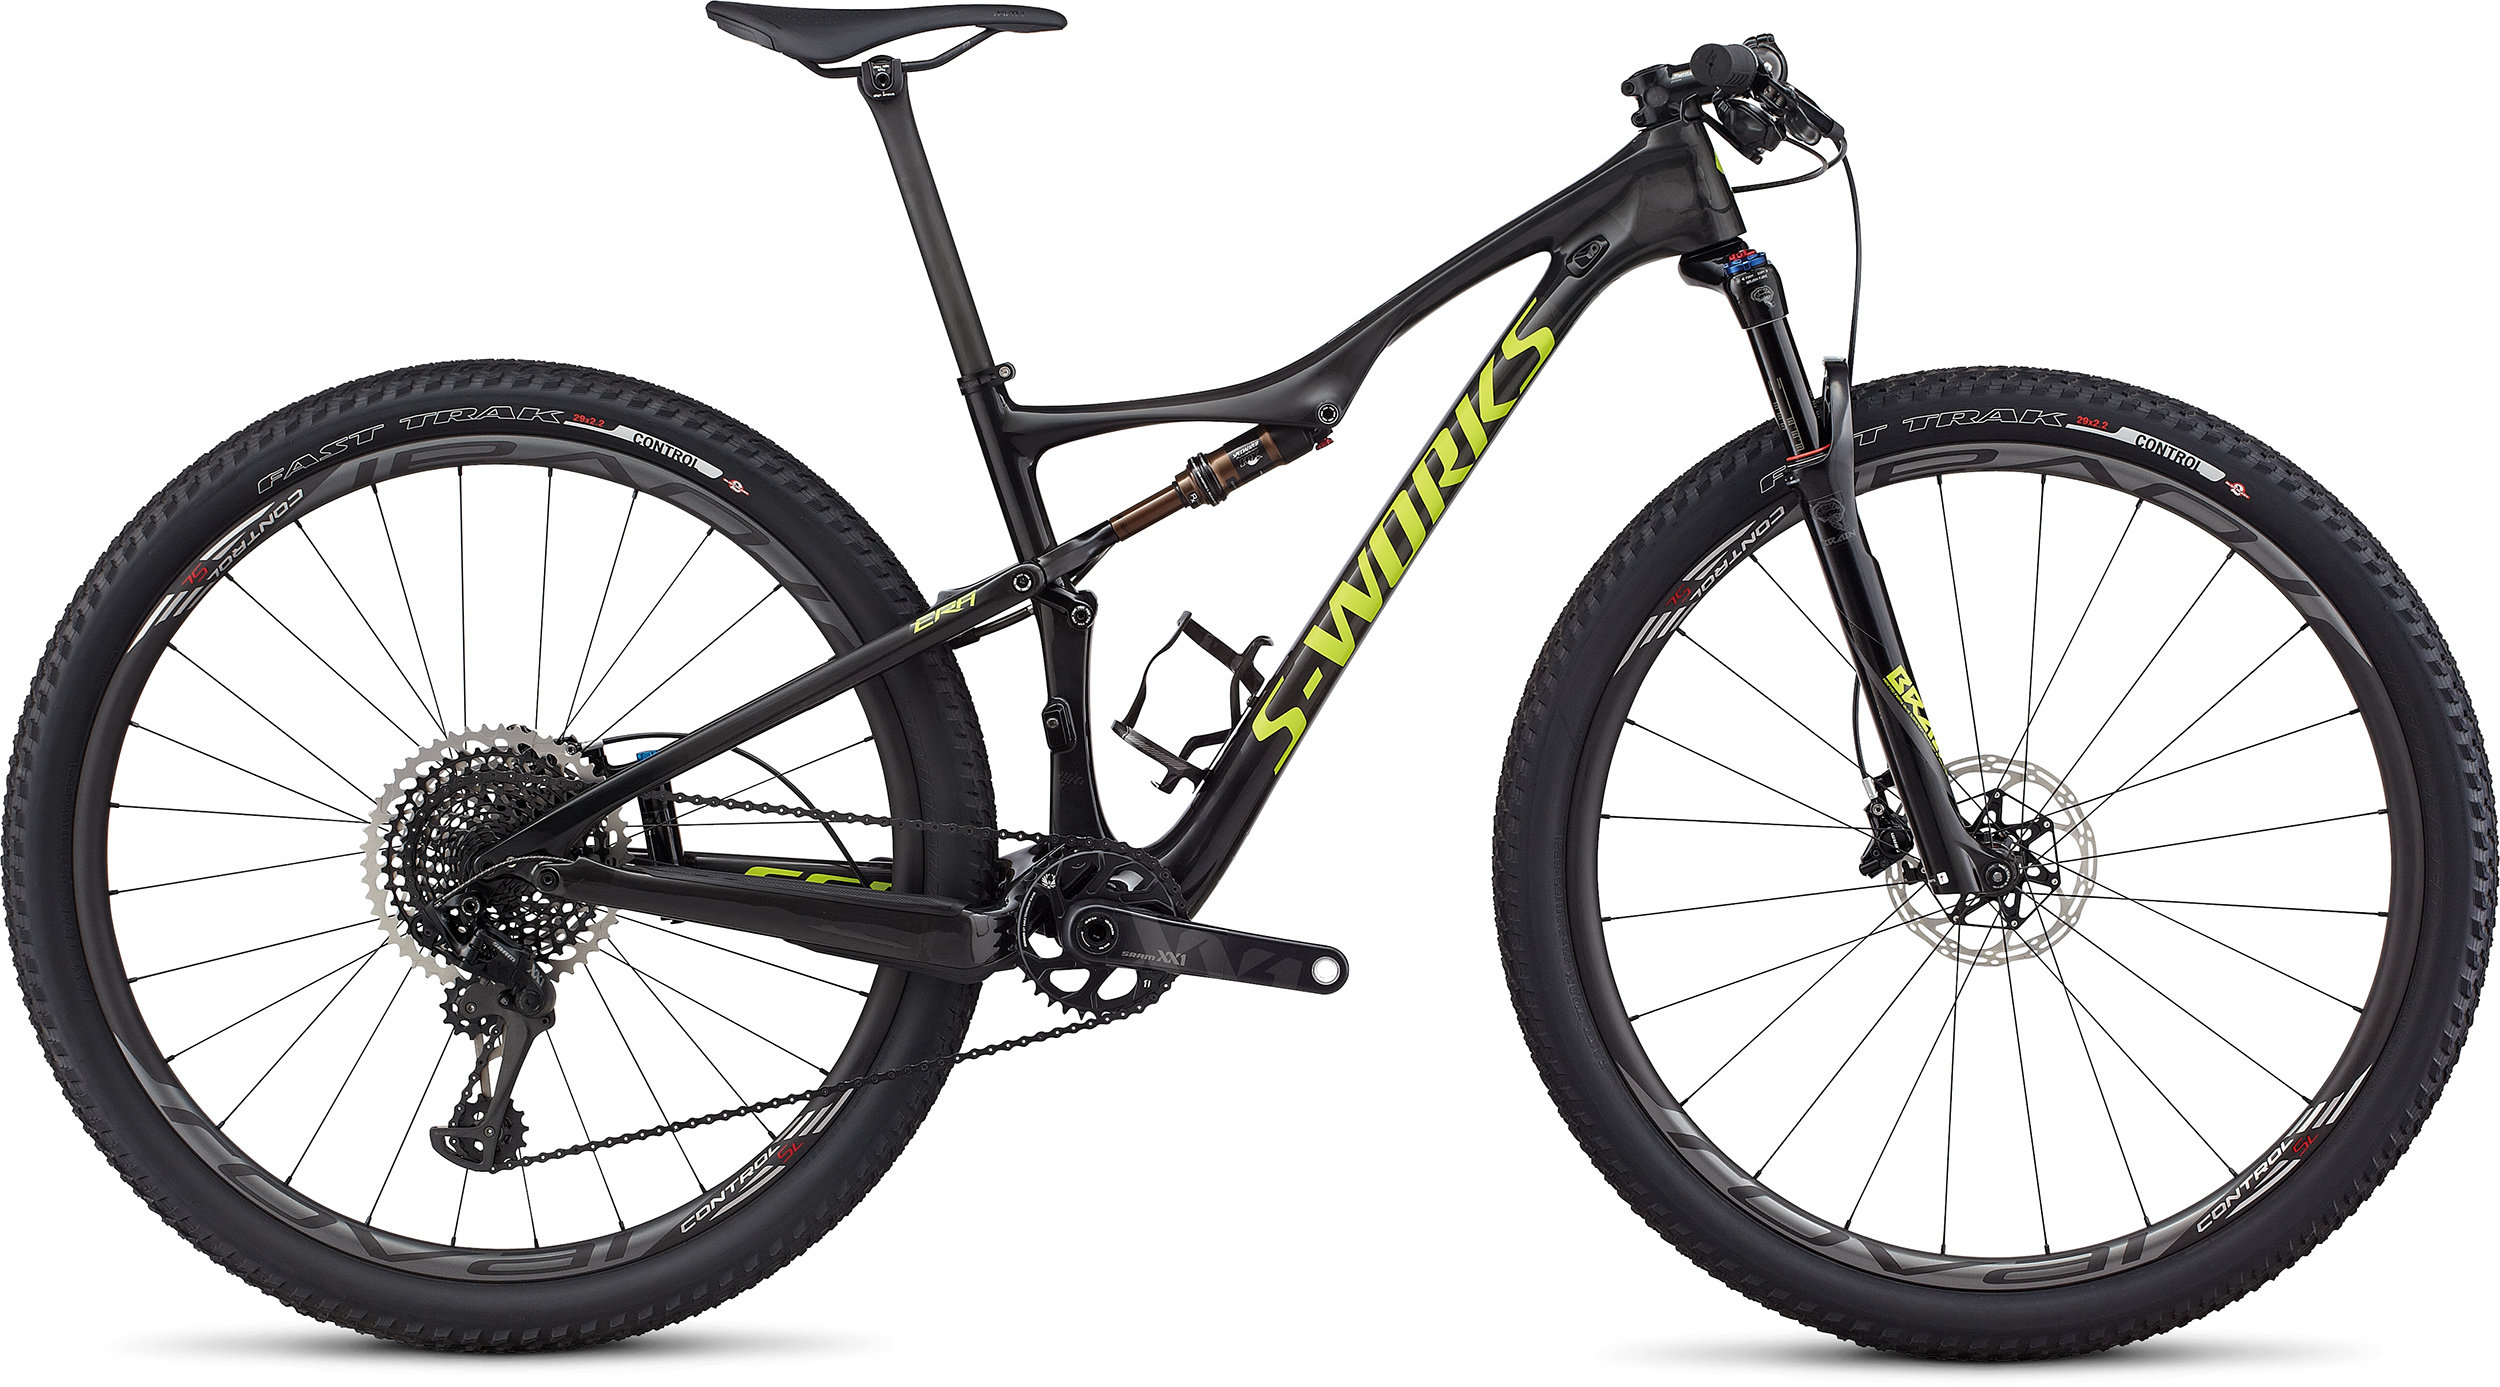 SPECIALIZED SW ERA FSR CARBON WC 29 CARB/HYP/TARBLK S - Bike Maniac